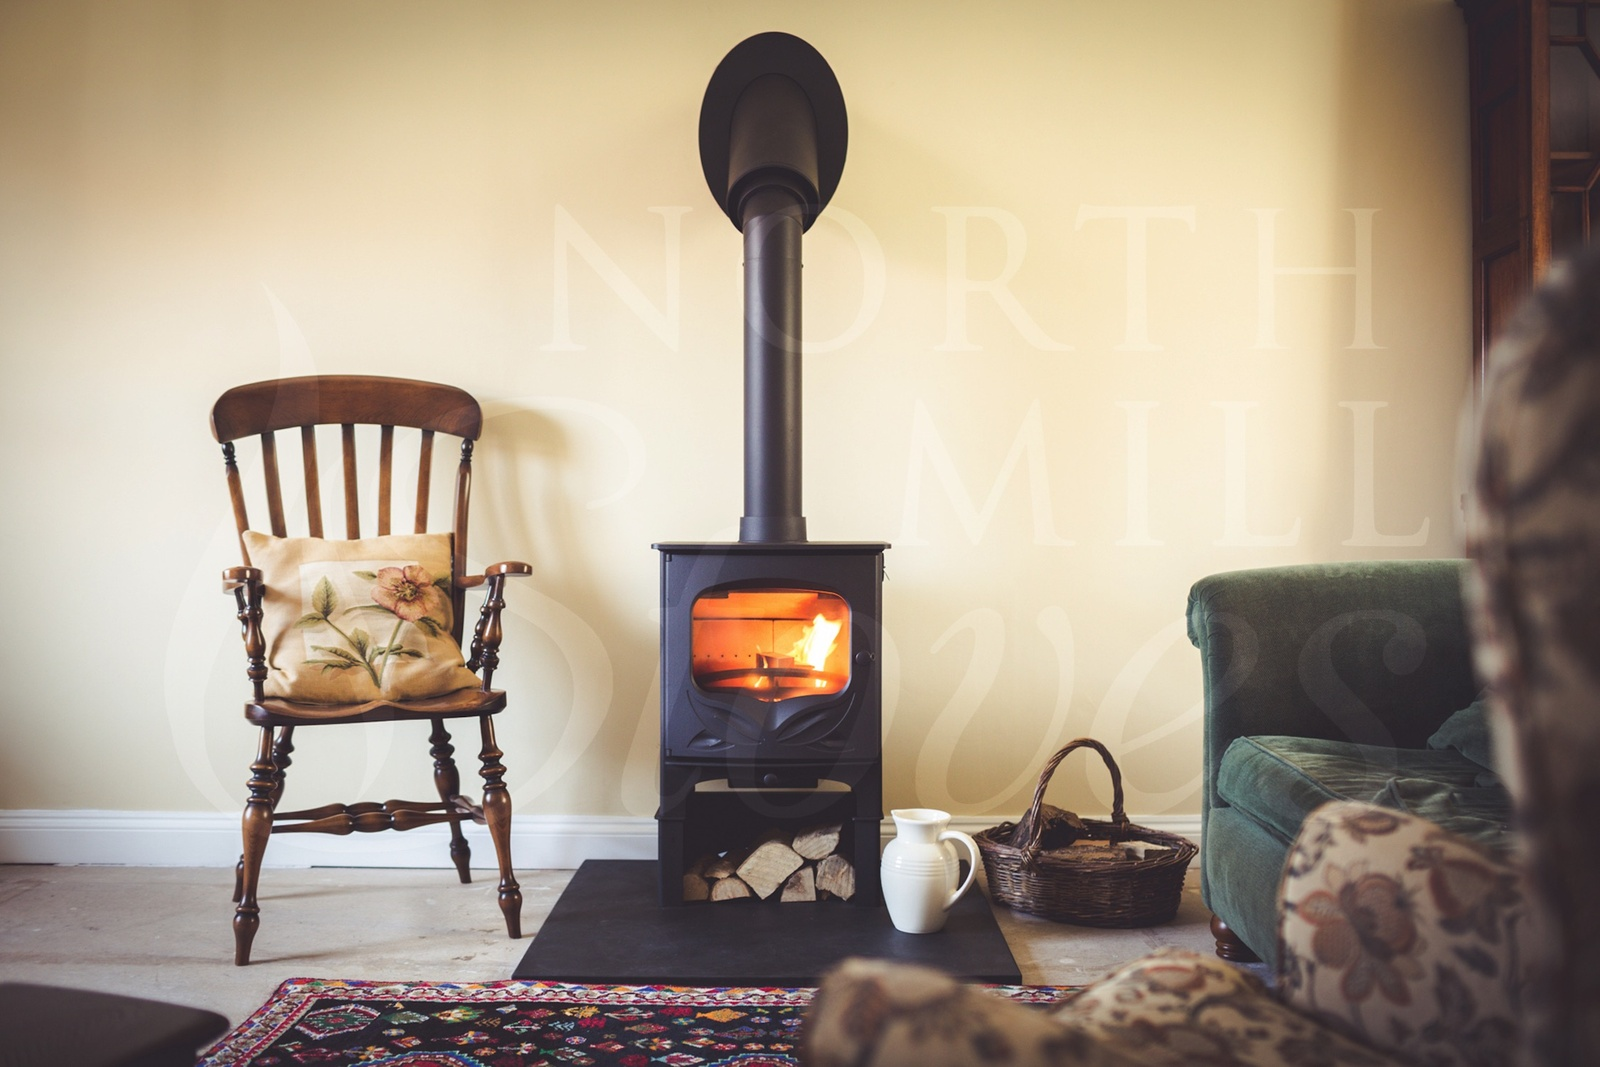 This lovely wychert cottage was the perfect backdrop to such a pretty stove.